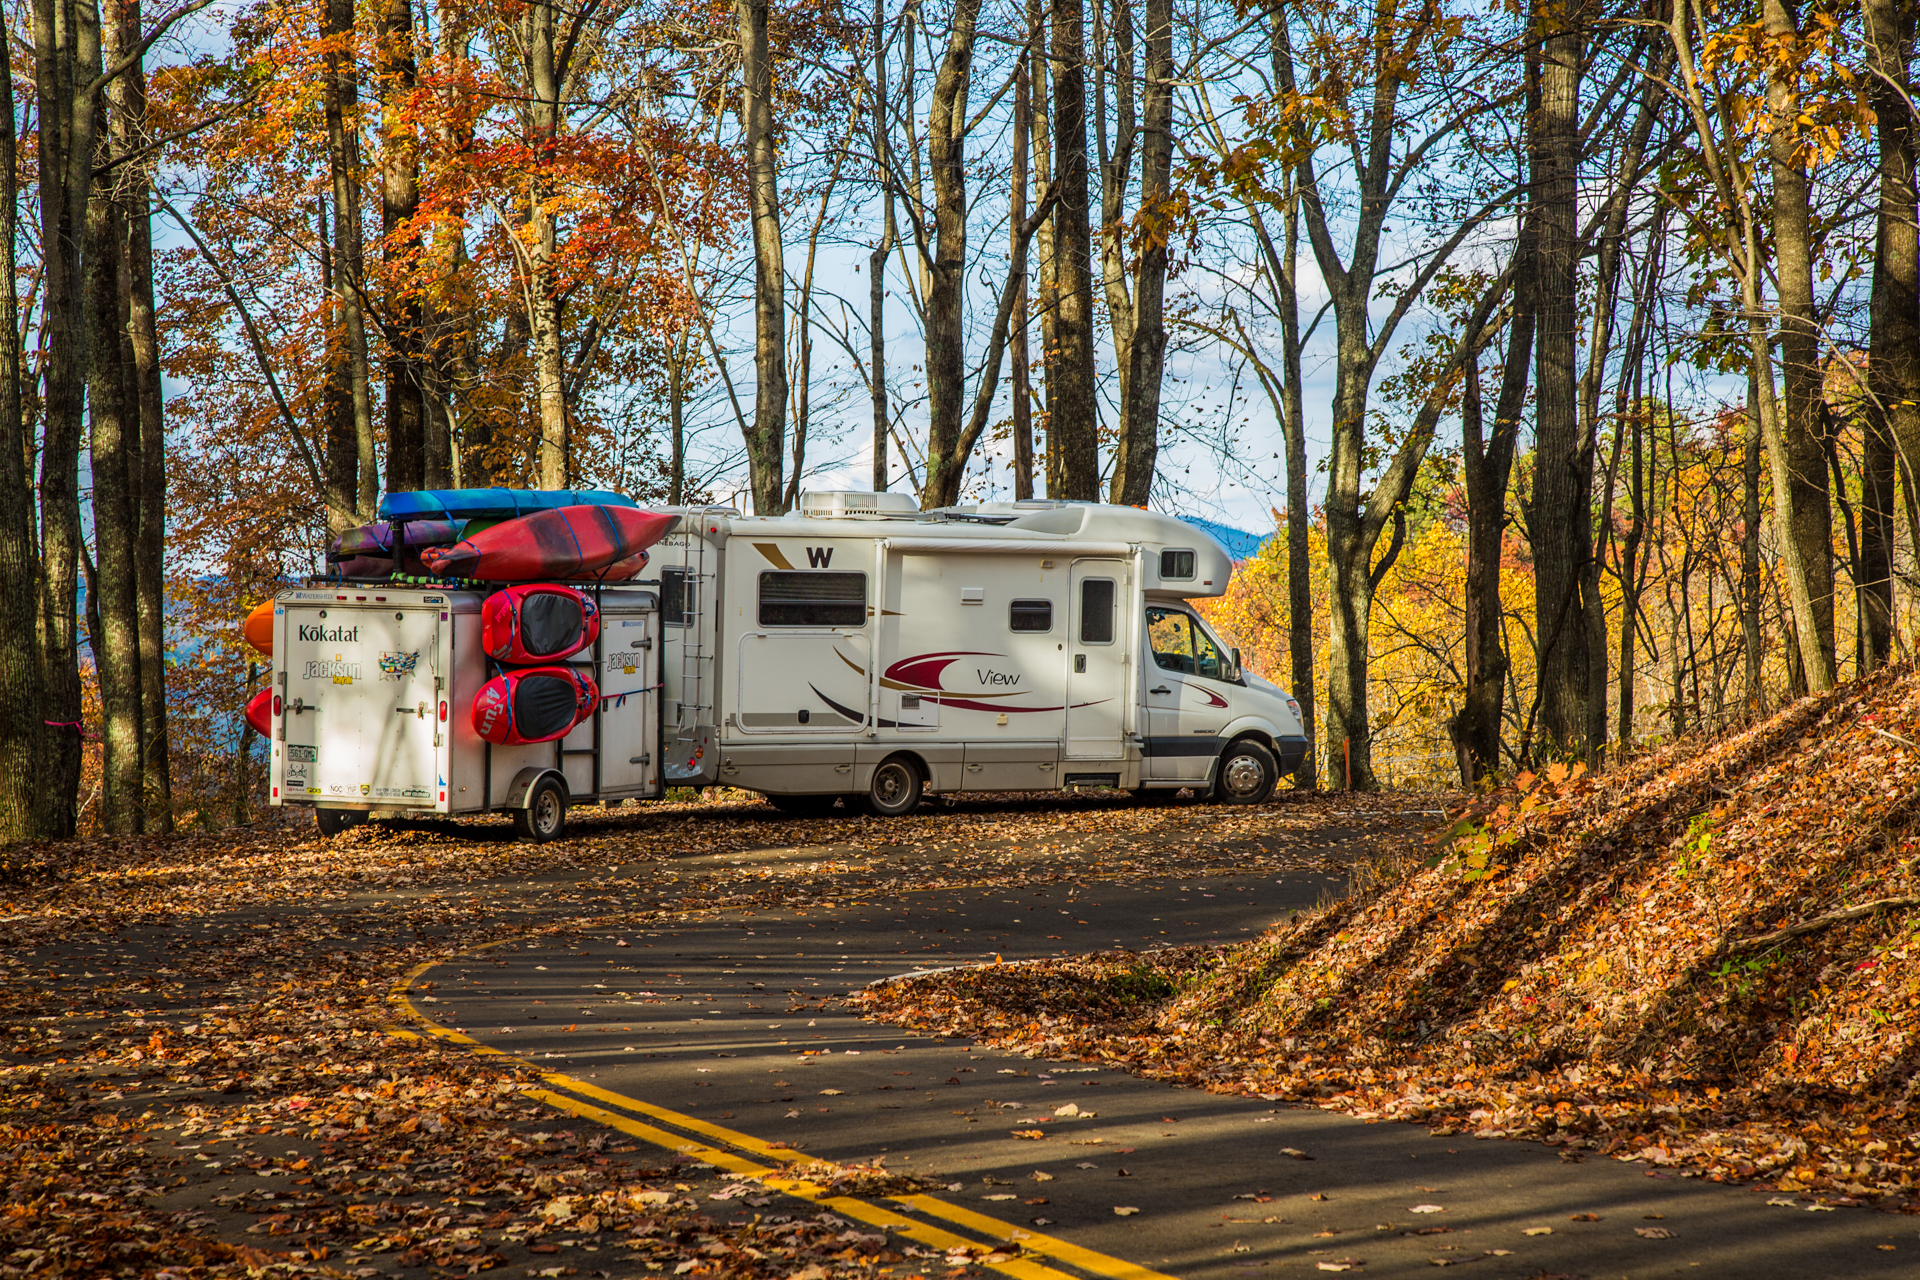 Winnebago View with toy trailer attached pulled to the side of the road among trees dropping leaves.